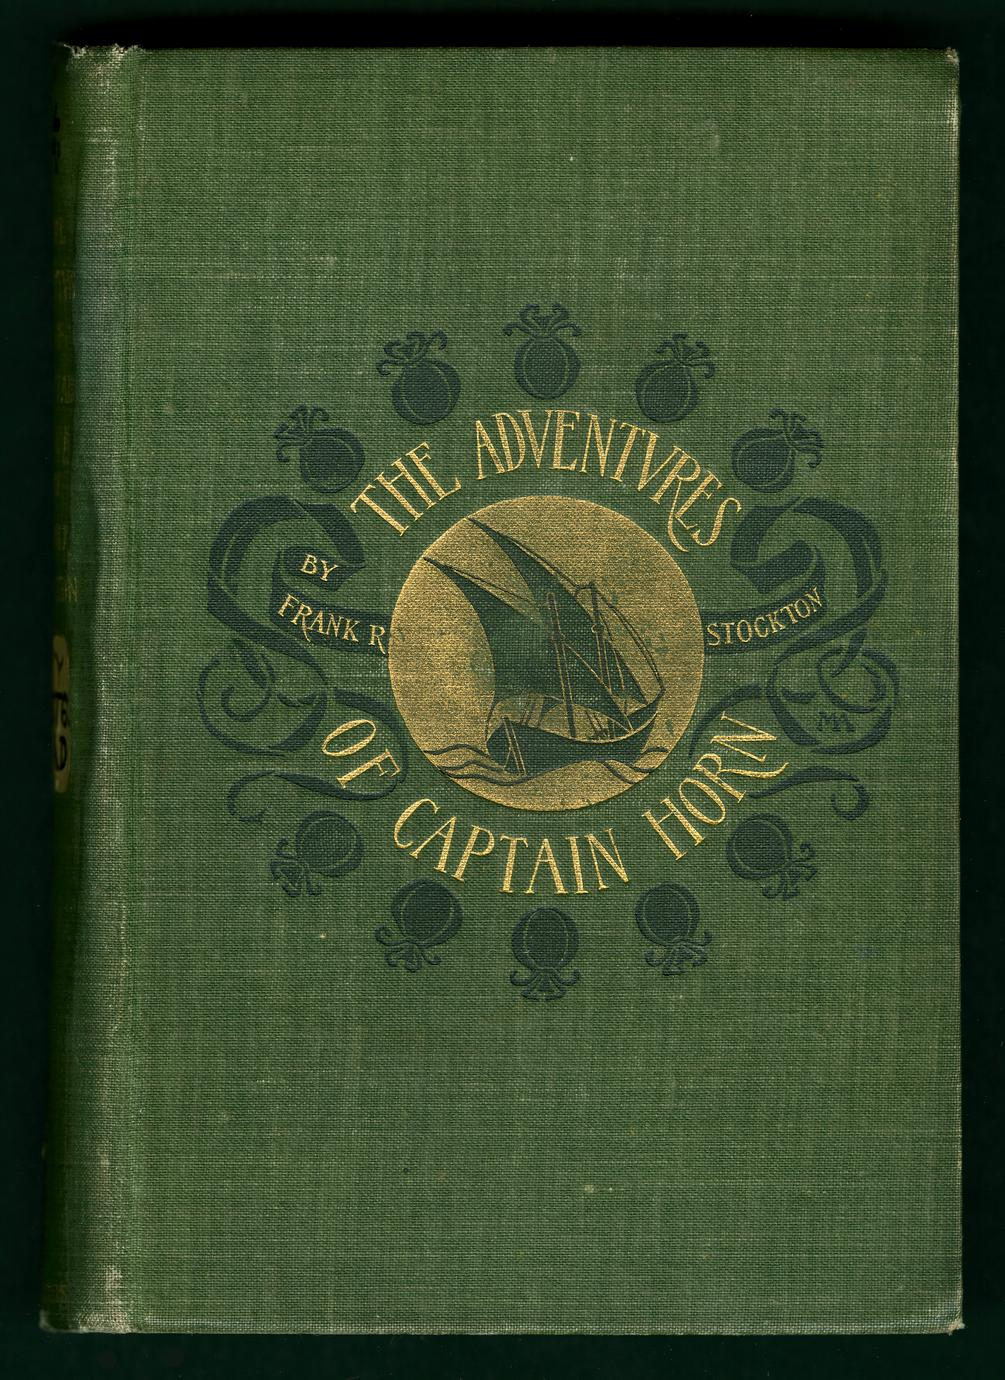 The adventures of Captain Horn (1 of 3)